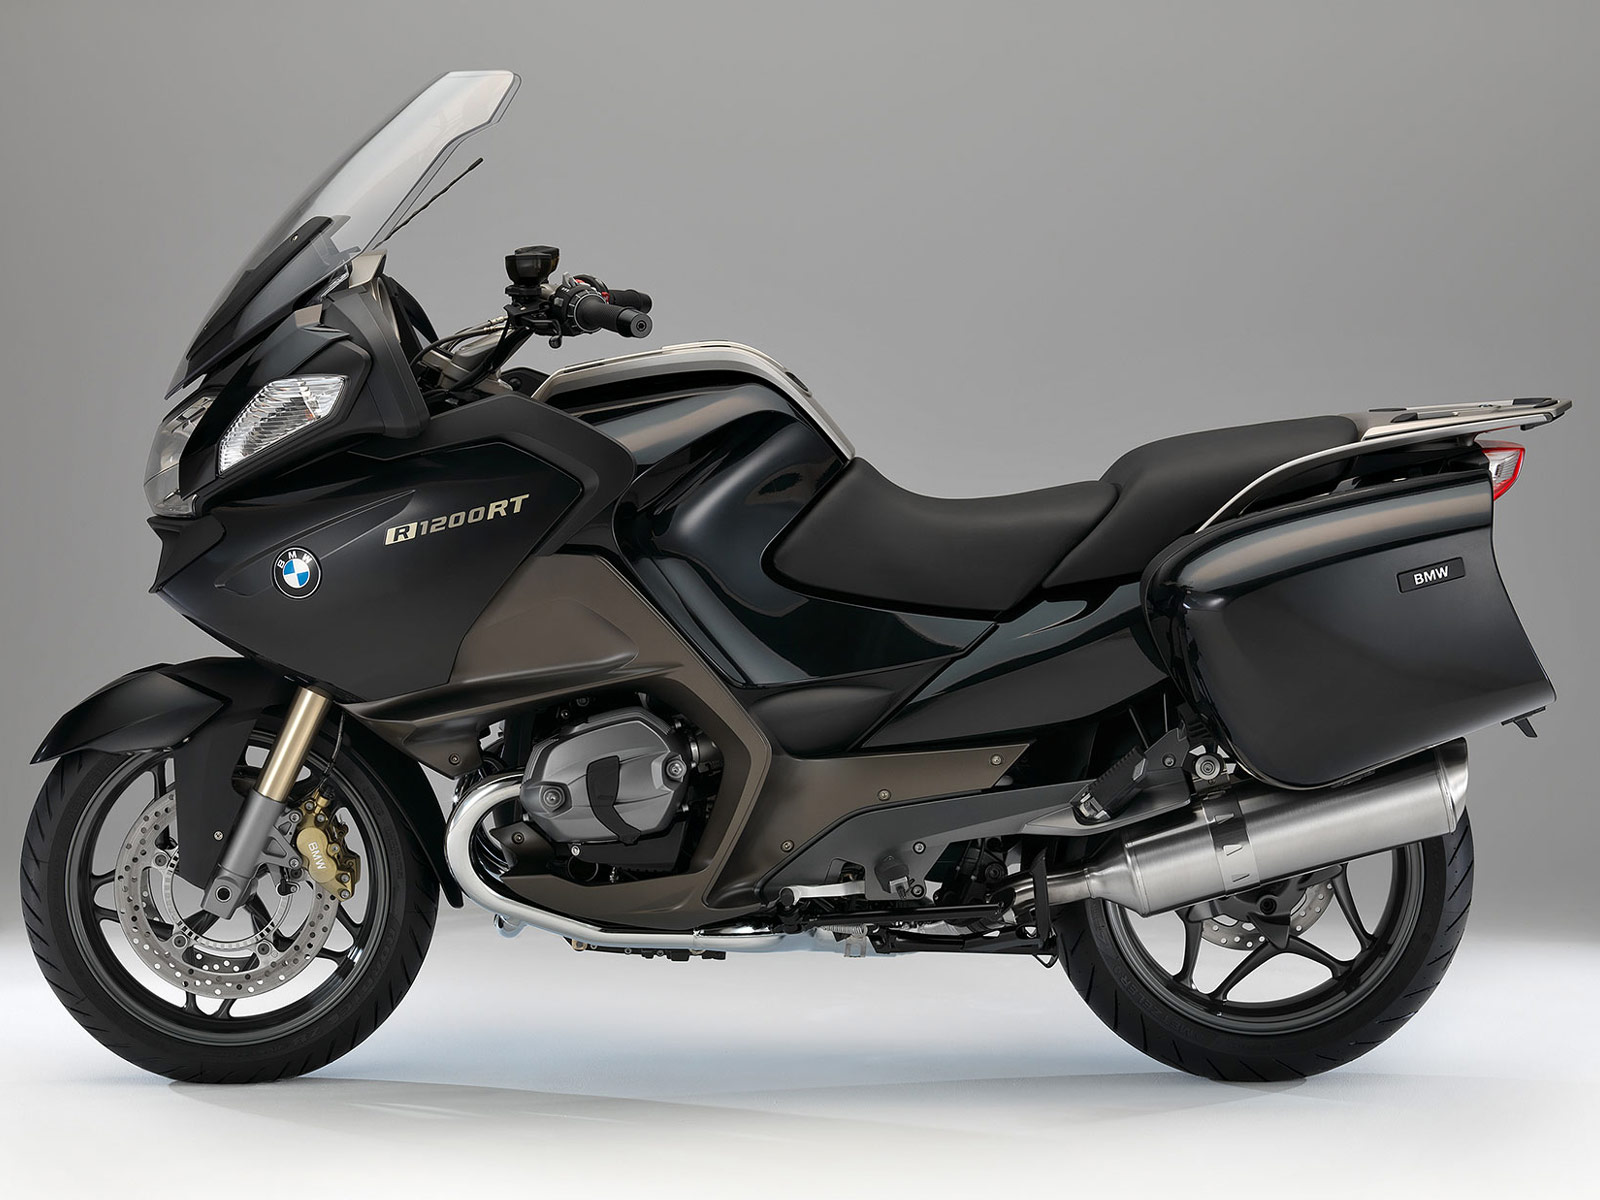 2013 Bmw R1200rt Motorcycle Insurance Information Pictures